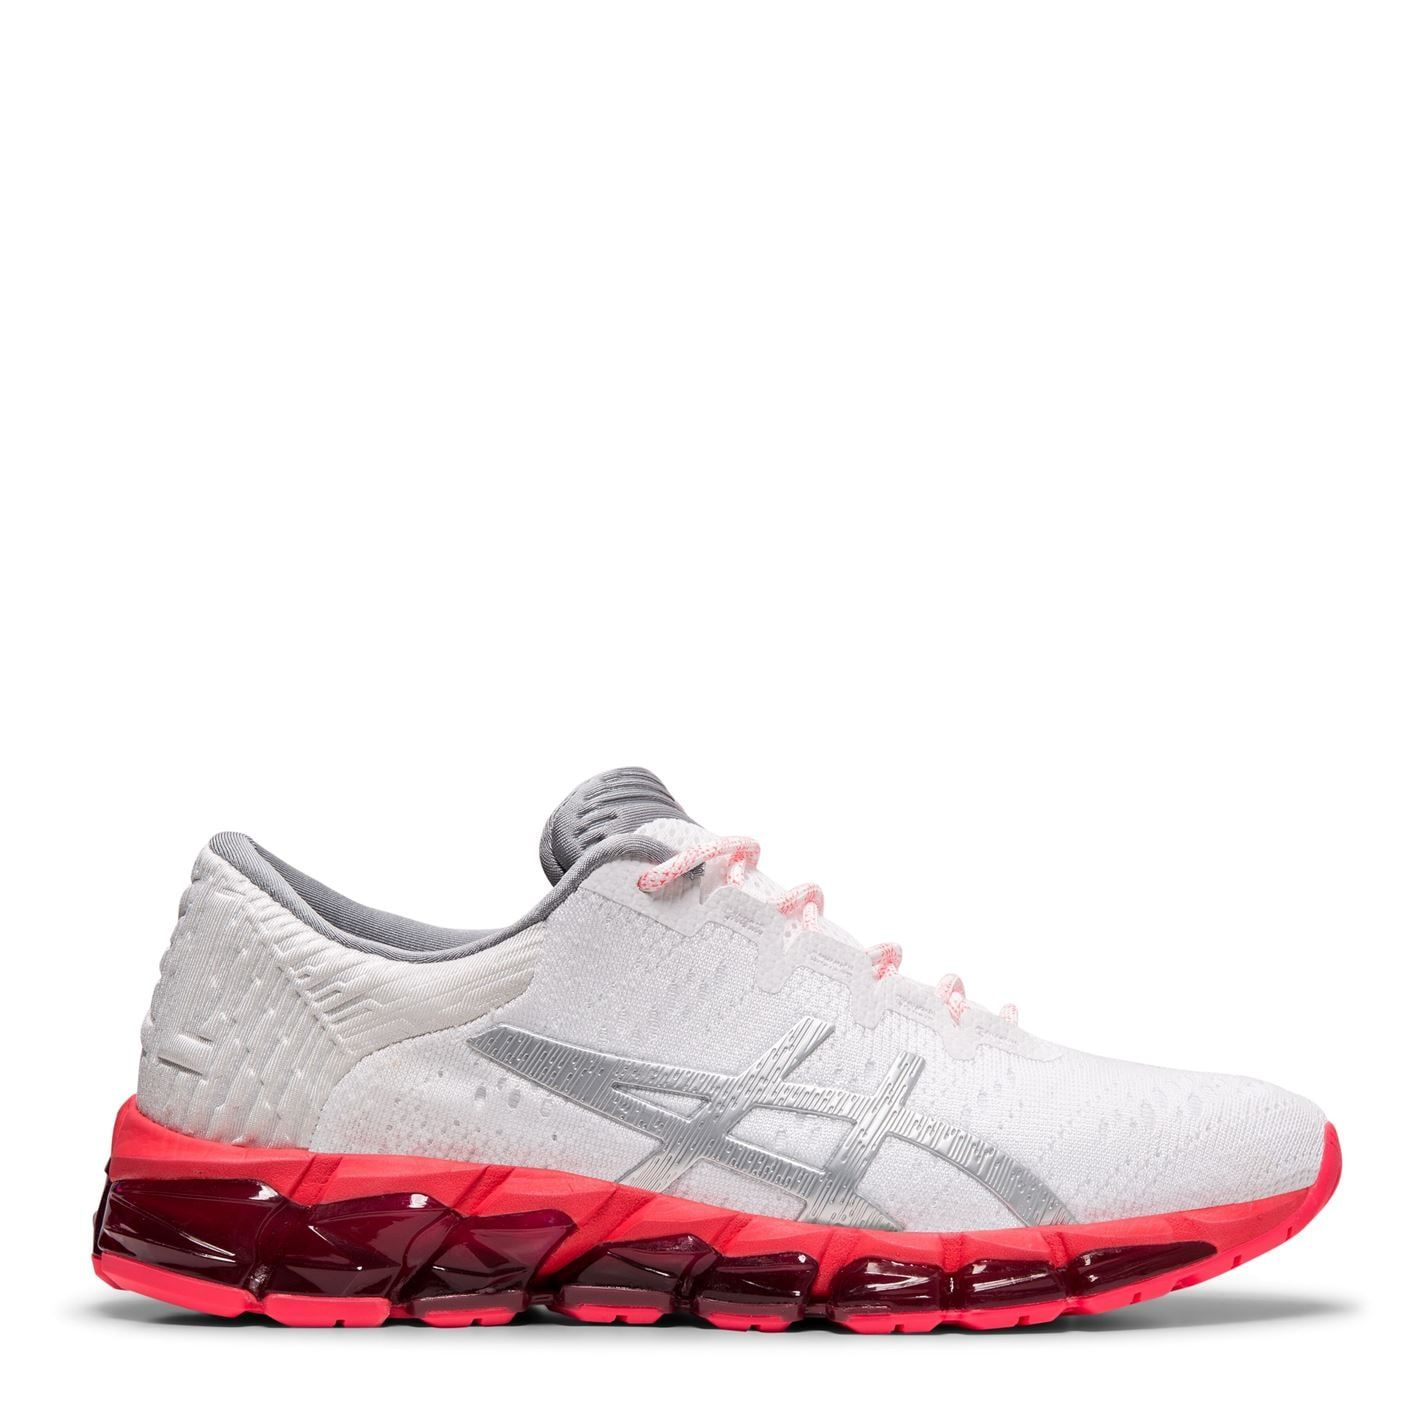 Asics Womens Gel Quantum 360 5 Trainers Sneakers Comfort Lace Up Running Shoes